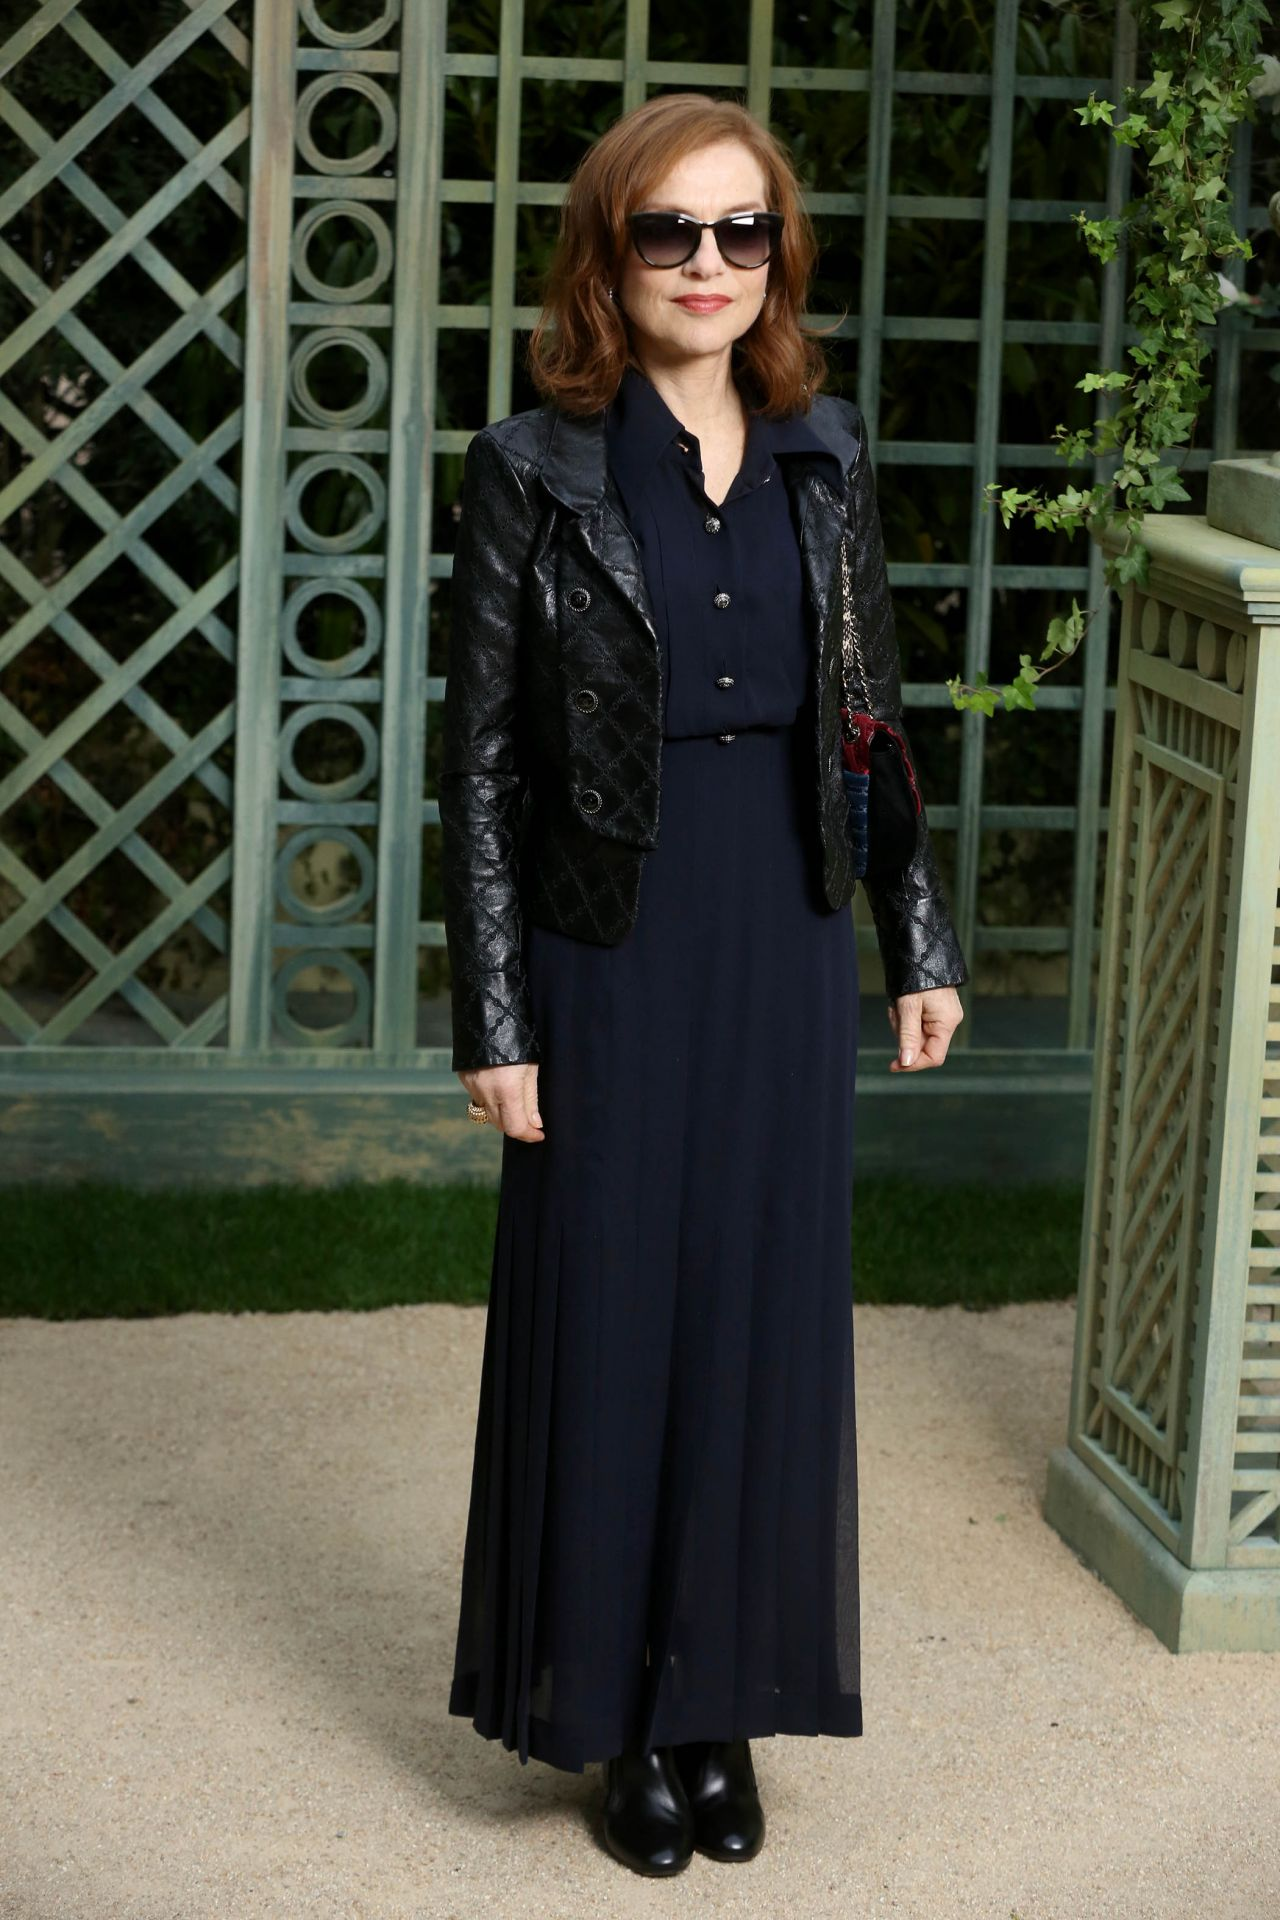 http://celebmafia.com/wp-content/uploads/2018/01/isabelle-huppert-at-chanel-paris-fashion-week-january-2018-3.jpg